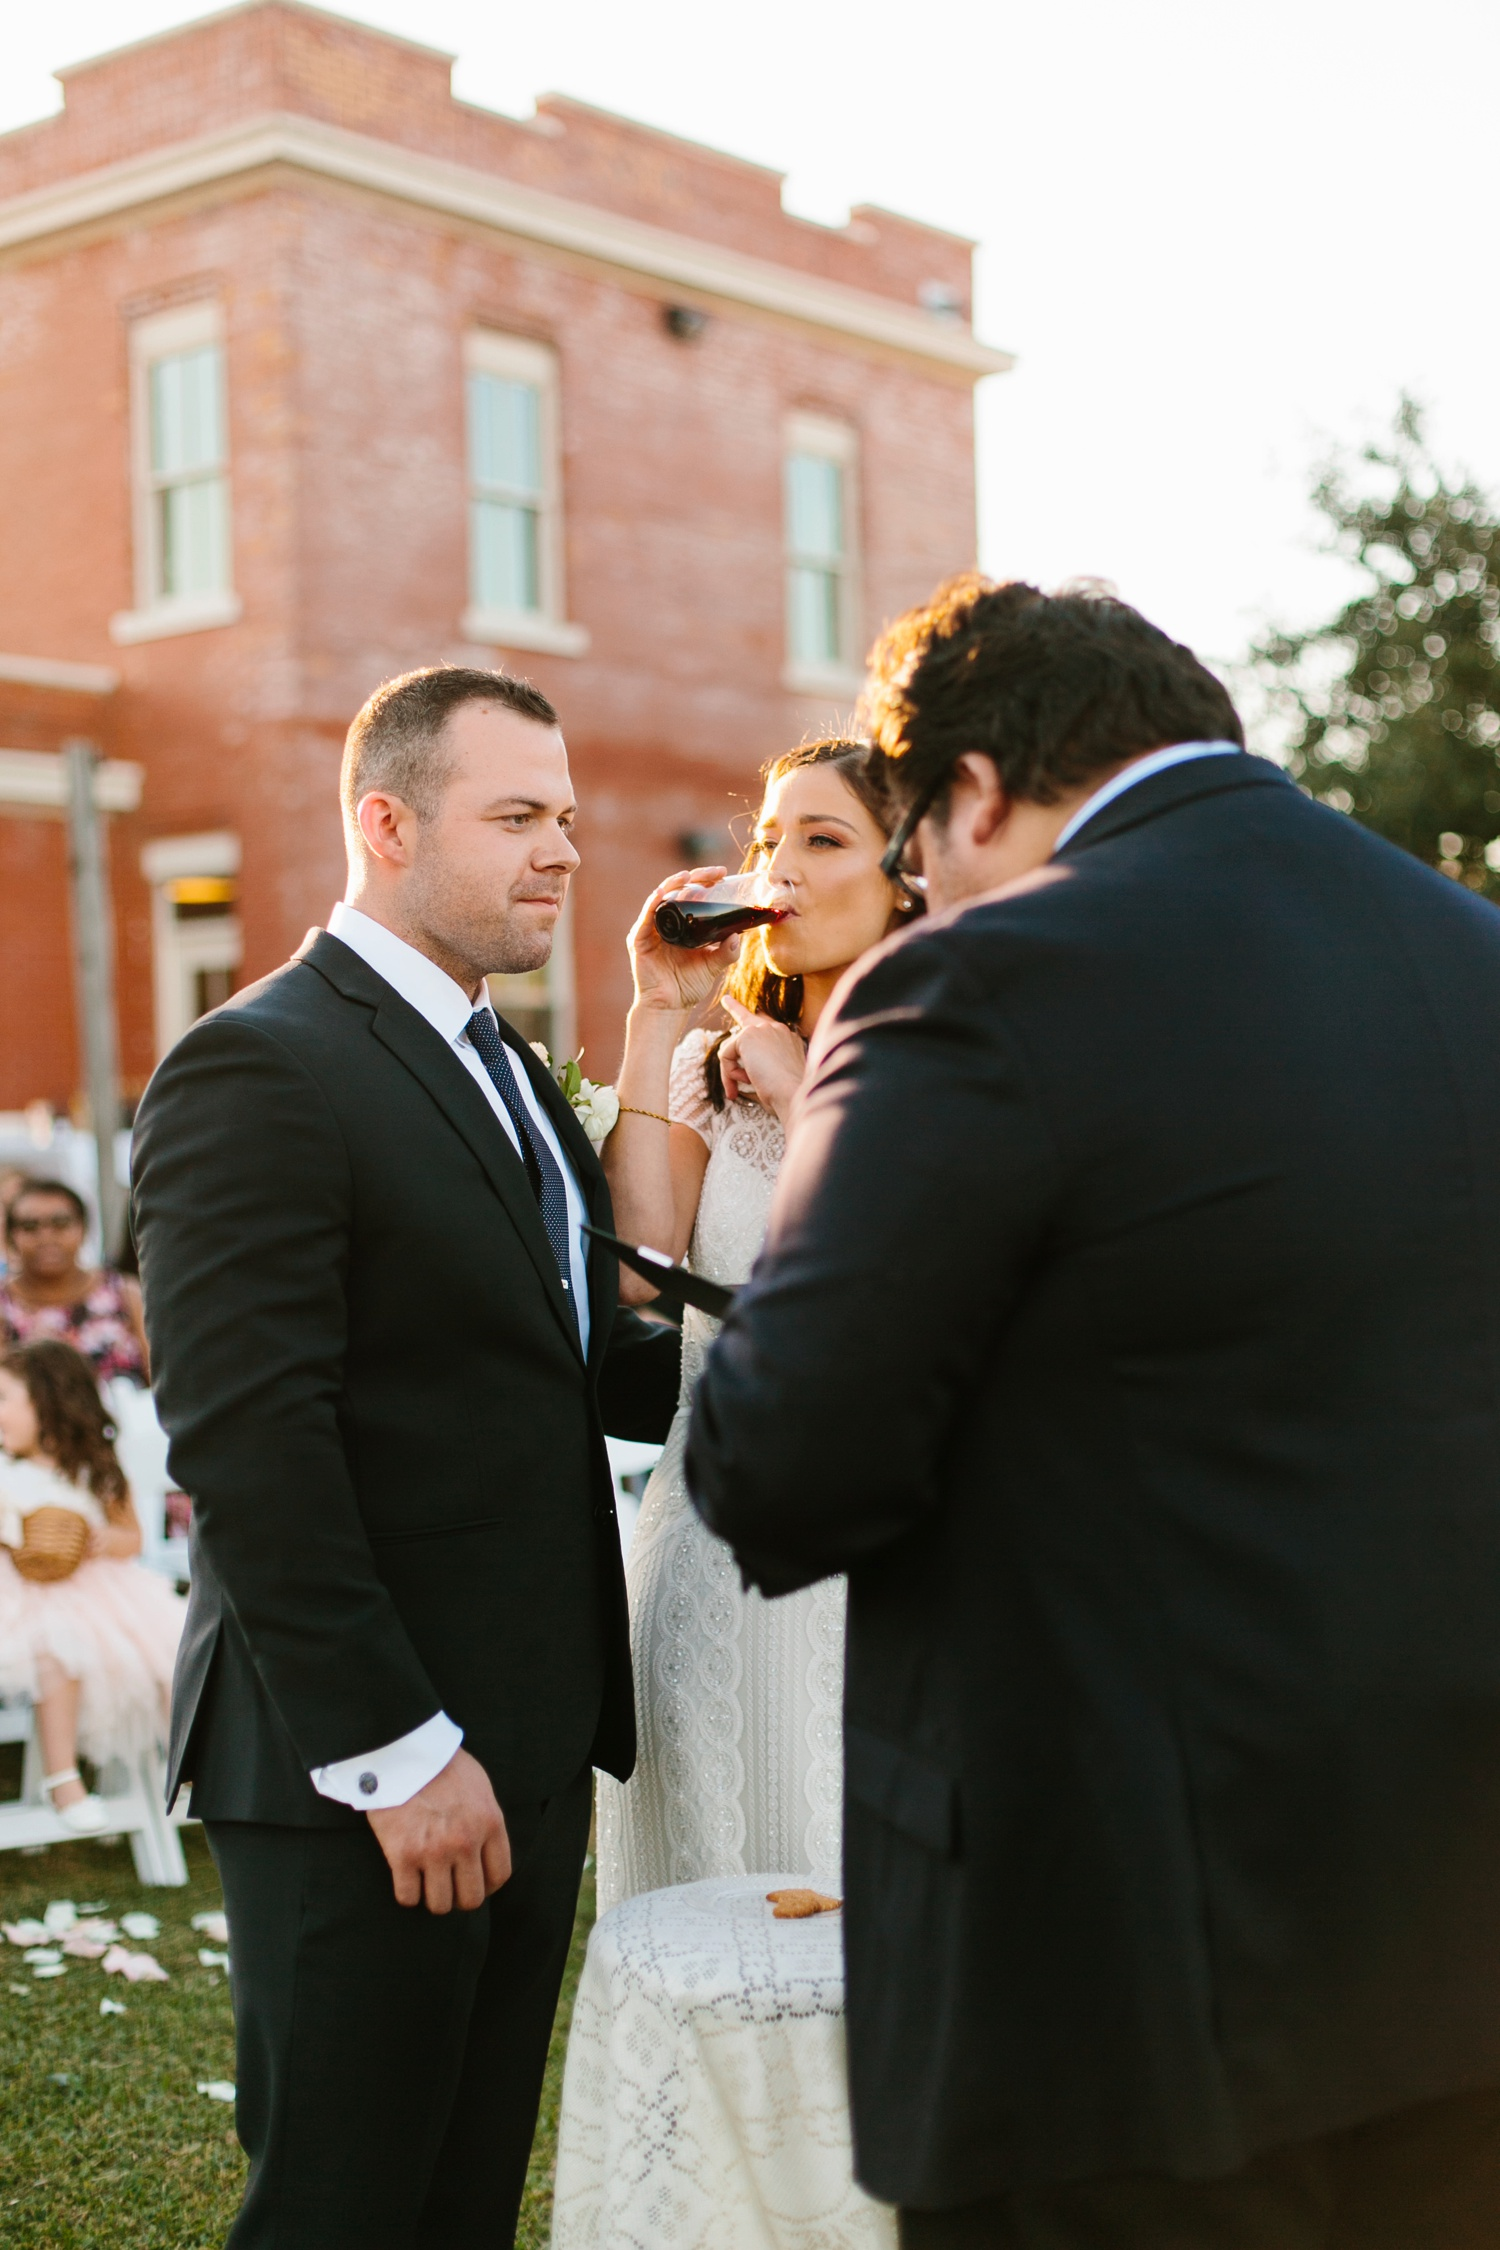 Kadee + Tyler | a raw, emotional wedding at the Filter Building on White Rock Lake in Dallas, TX by North Texas Wedding Photographer, Rachel Meagan Photography 143